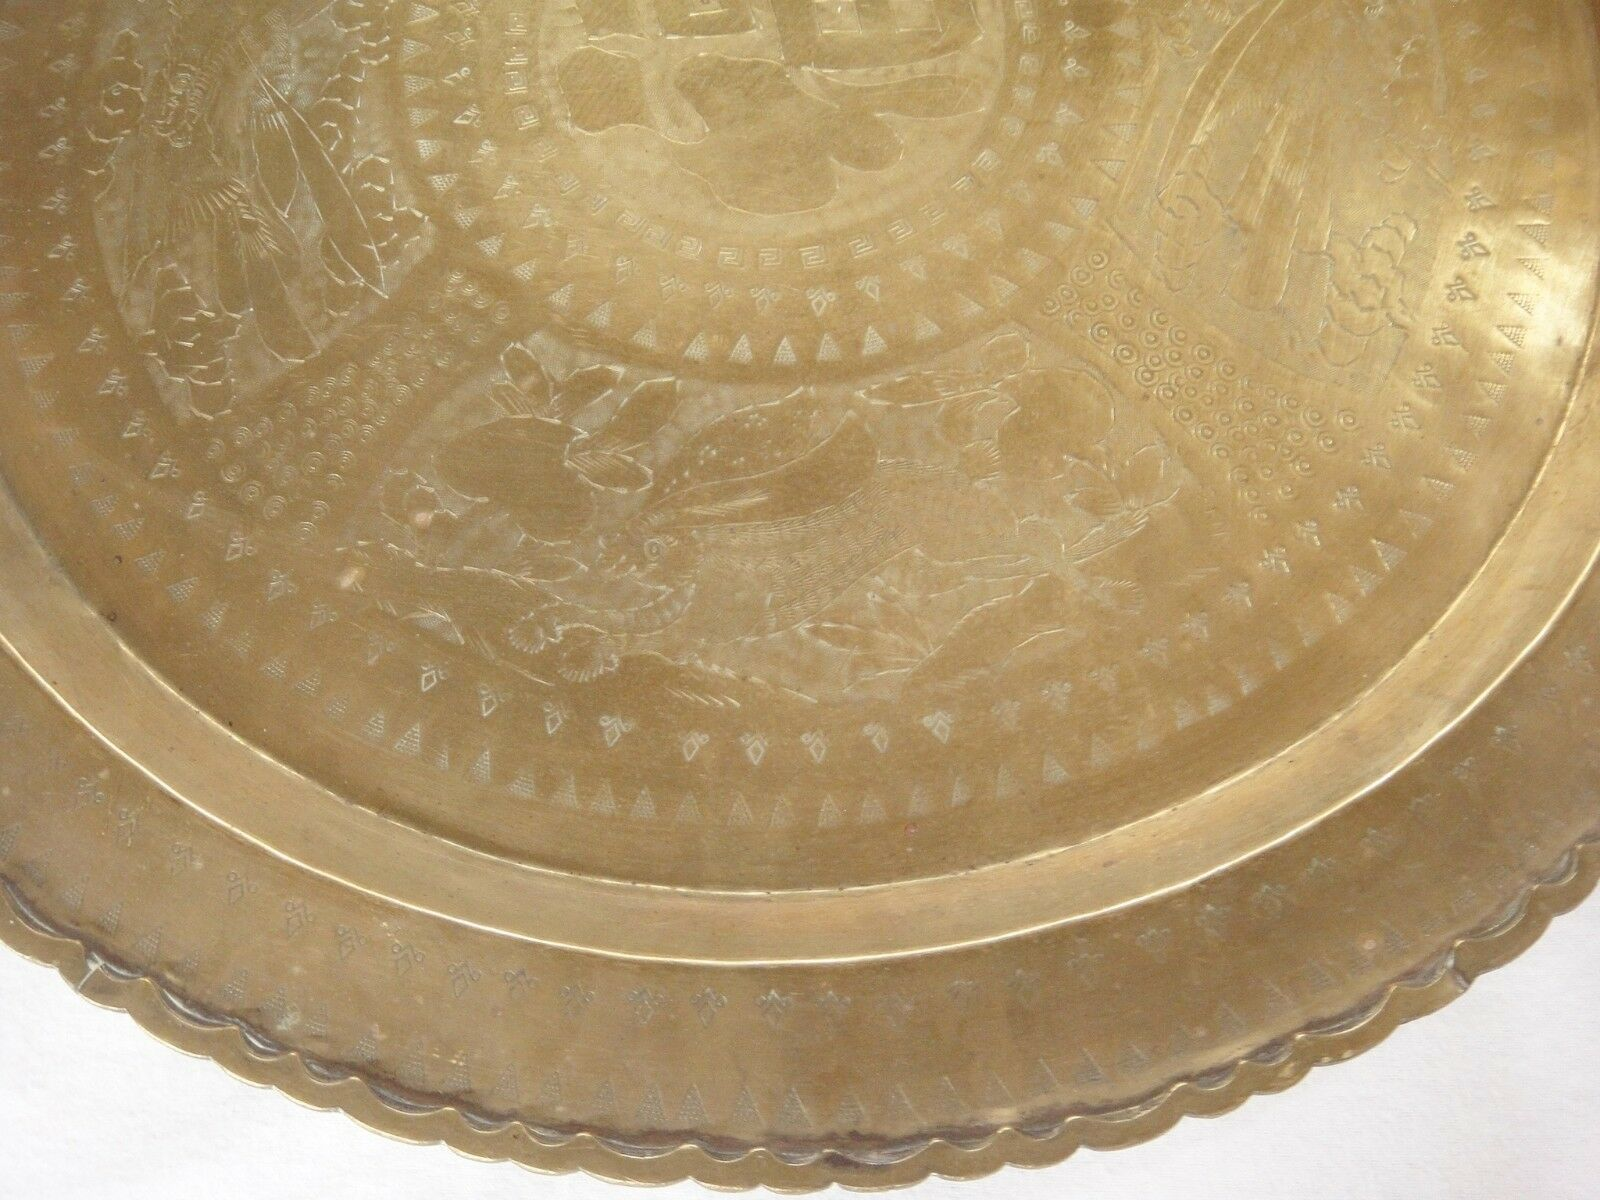 """Huge Brass Asian Tray Centerpiece Charger 22"""" Birds of Prey Rabbit Engraved HTF image 2"""